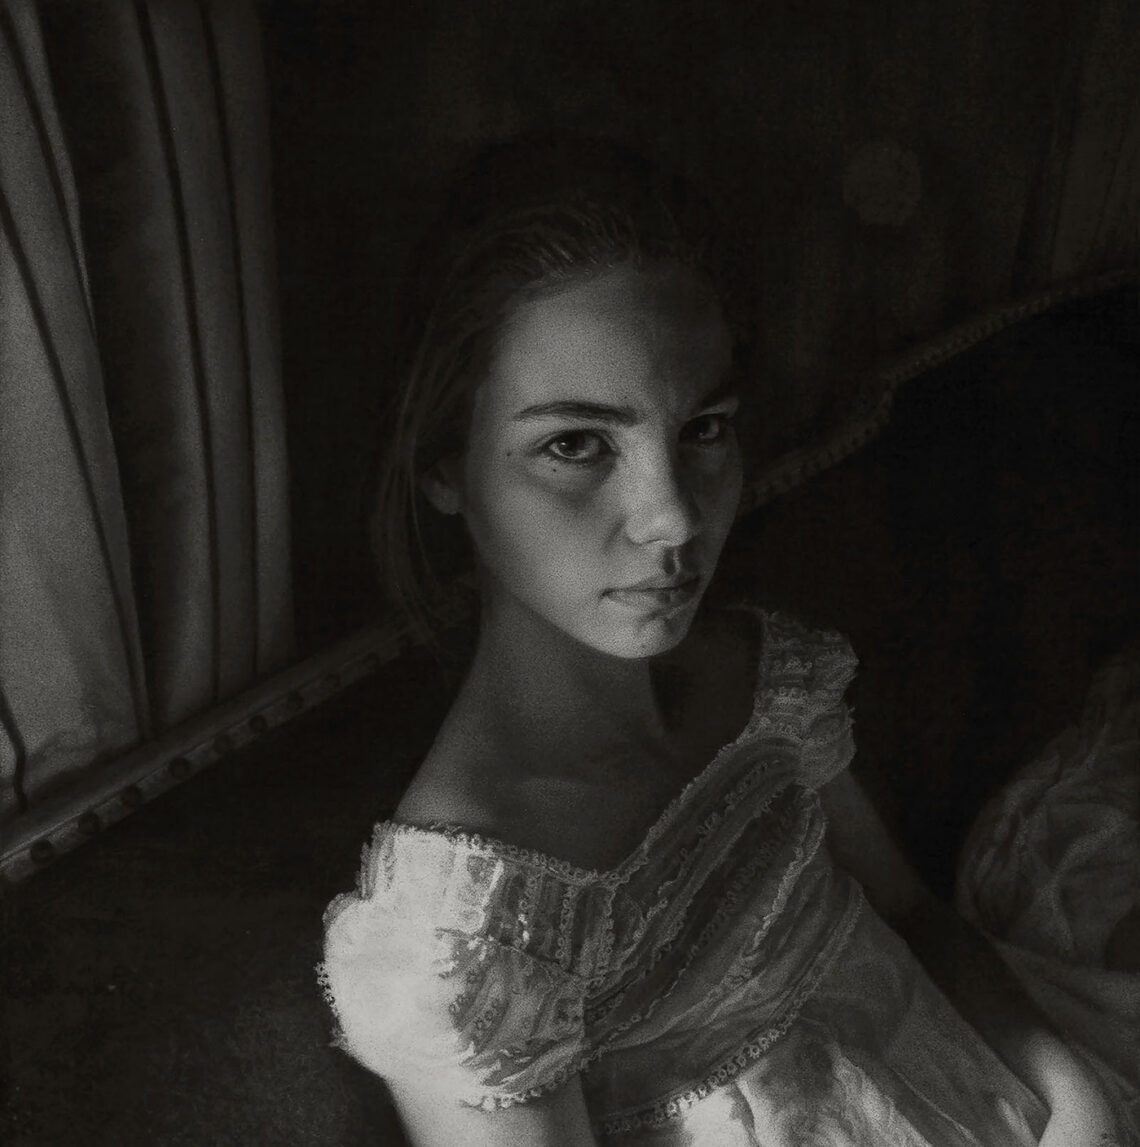 charcoal drawing by annie murphy-robinson - 2019 beautiful bizarre art prize winner - exhibition